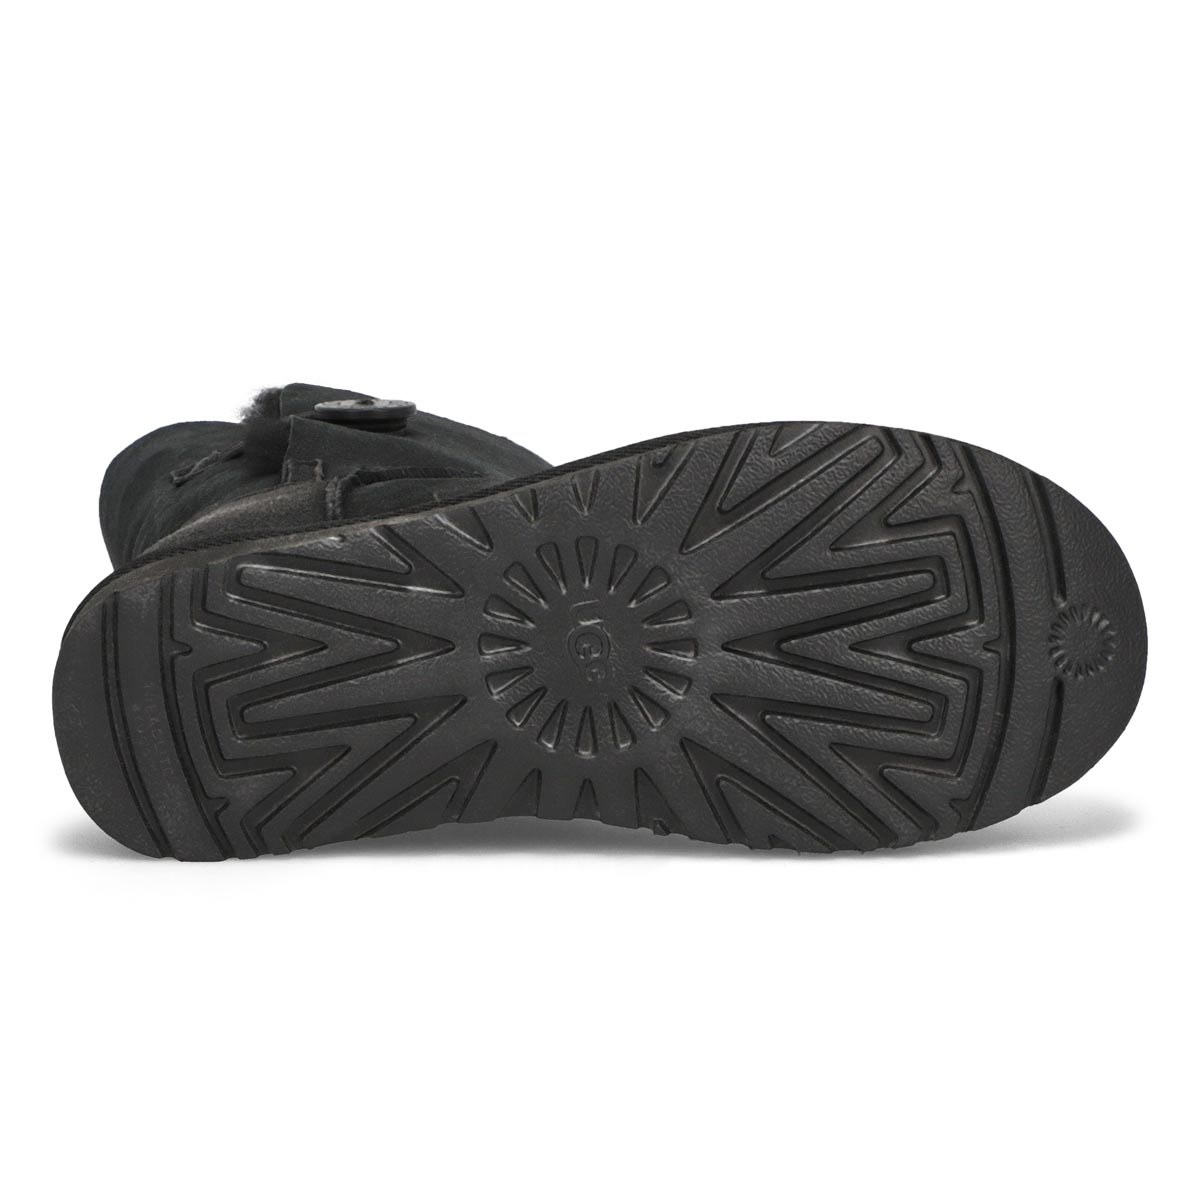 Lds Bailey Button II blk sheepskin boot